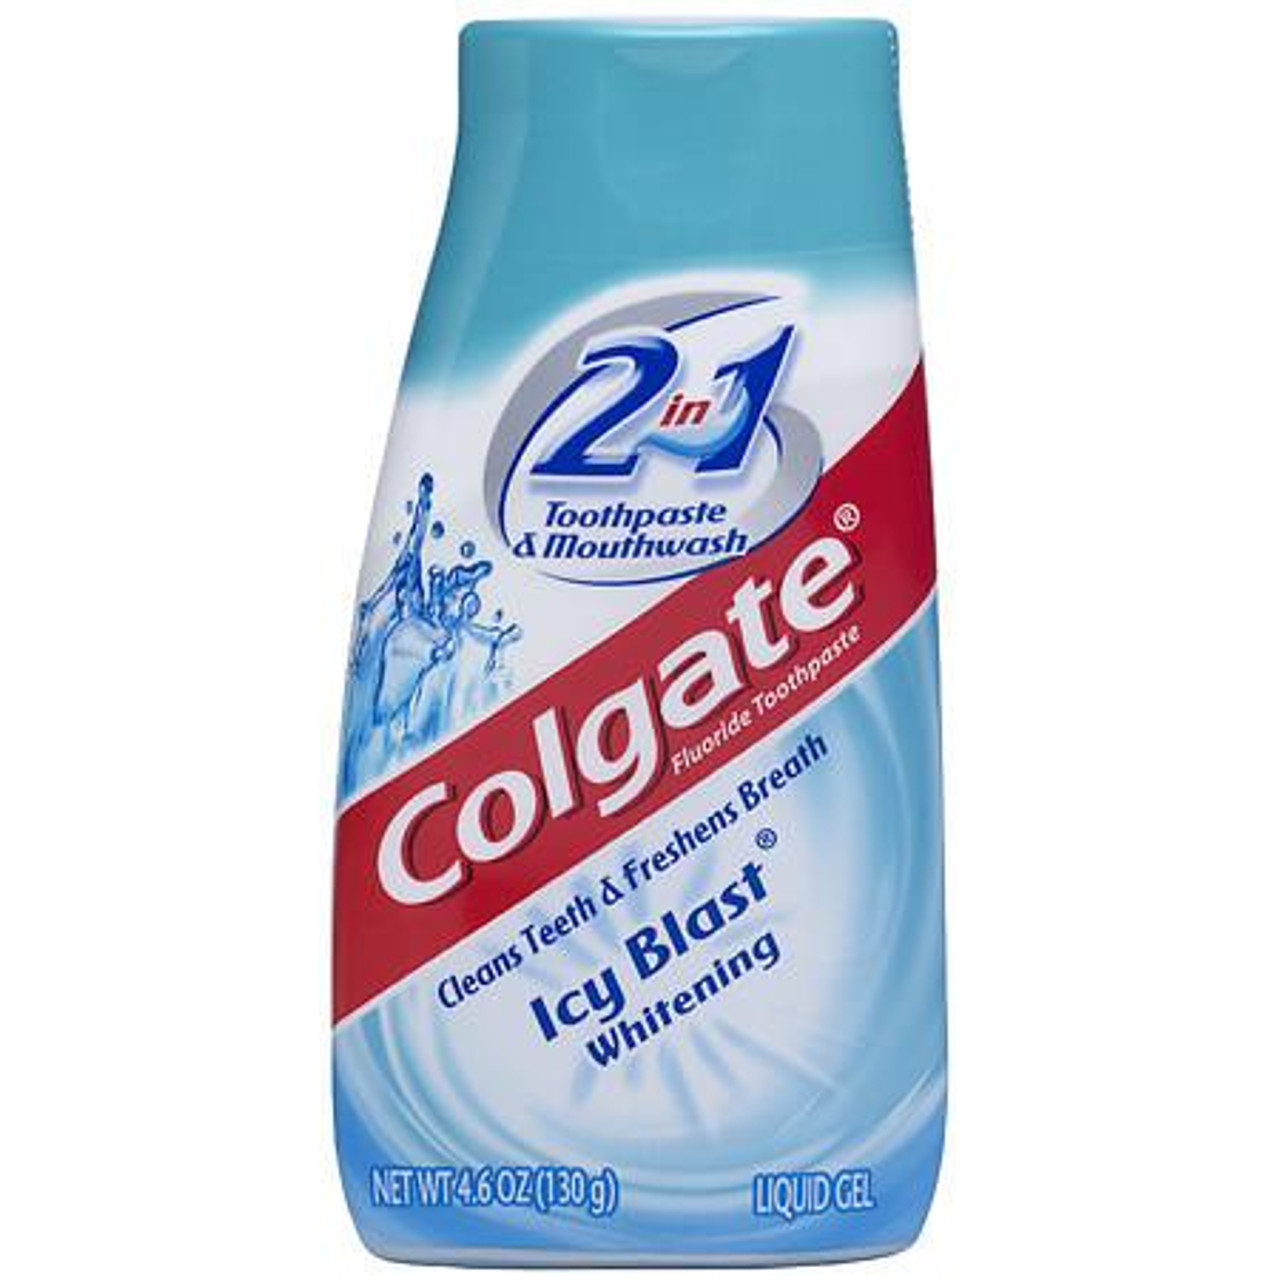 Colgate 2-In-1 Whitening Toothpaste & Mouthwash Fluoride Liquid Gel, Icy  Blast, 4 6 oz